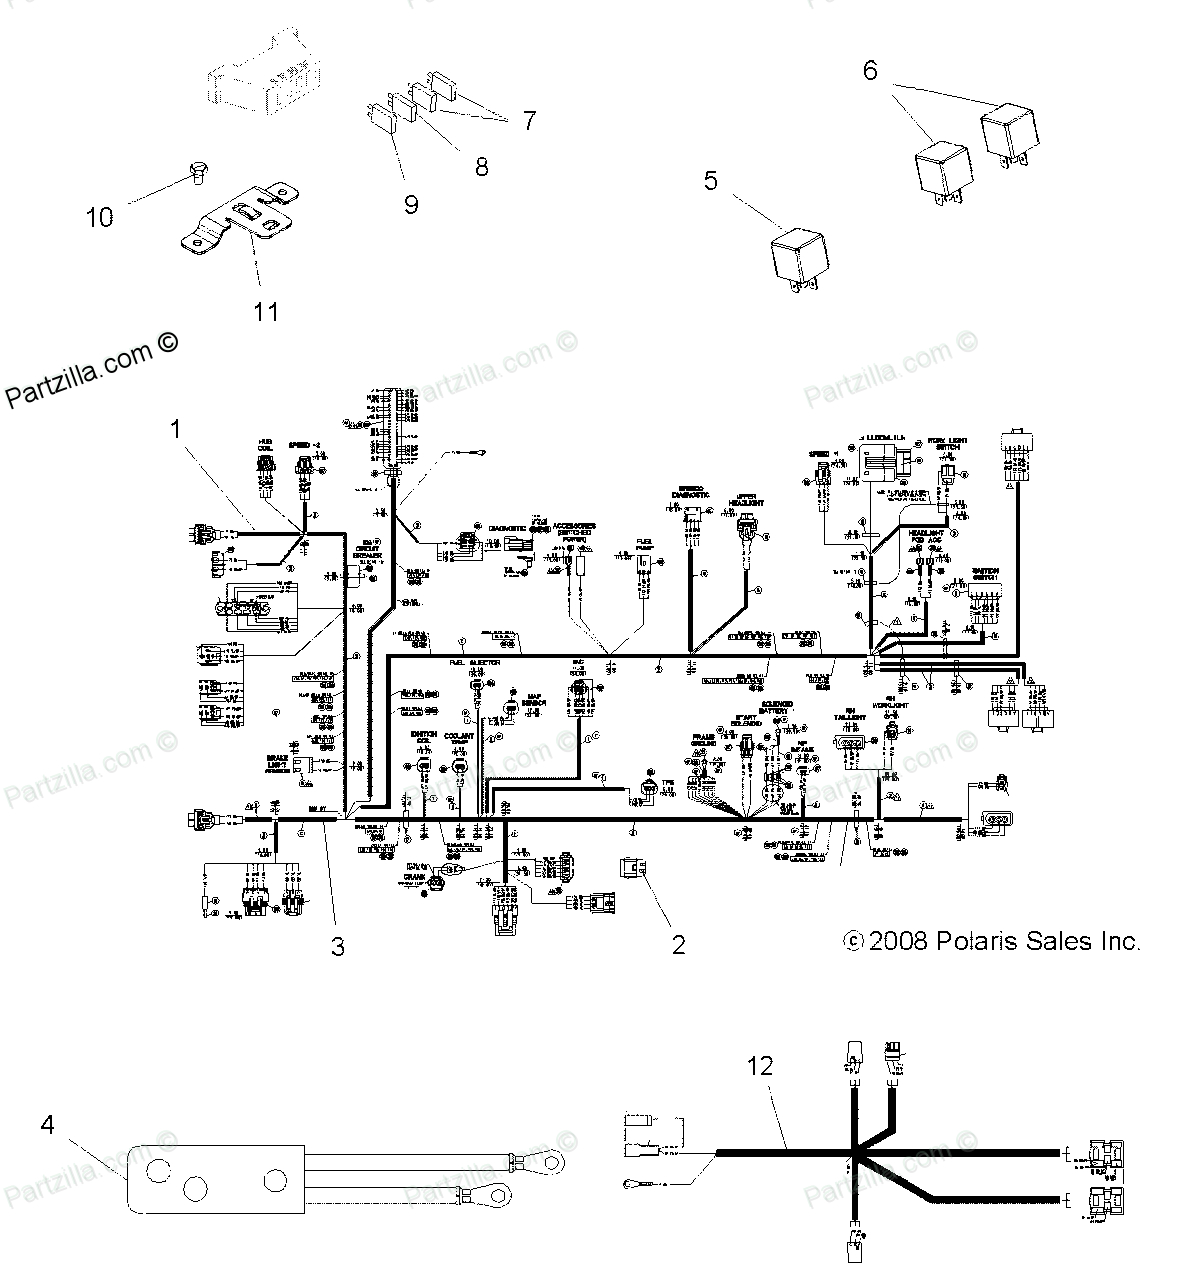 polaris sportsman 400 wiring diagram polaris sportsman 400 wiring diagram